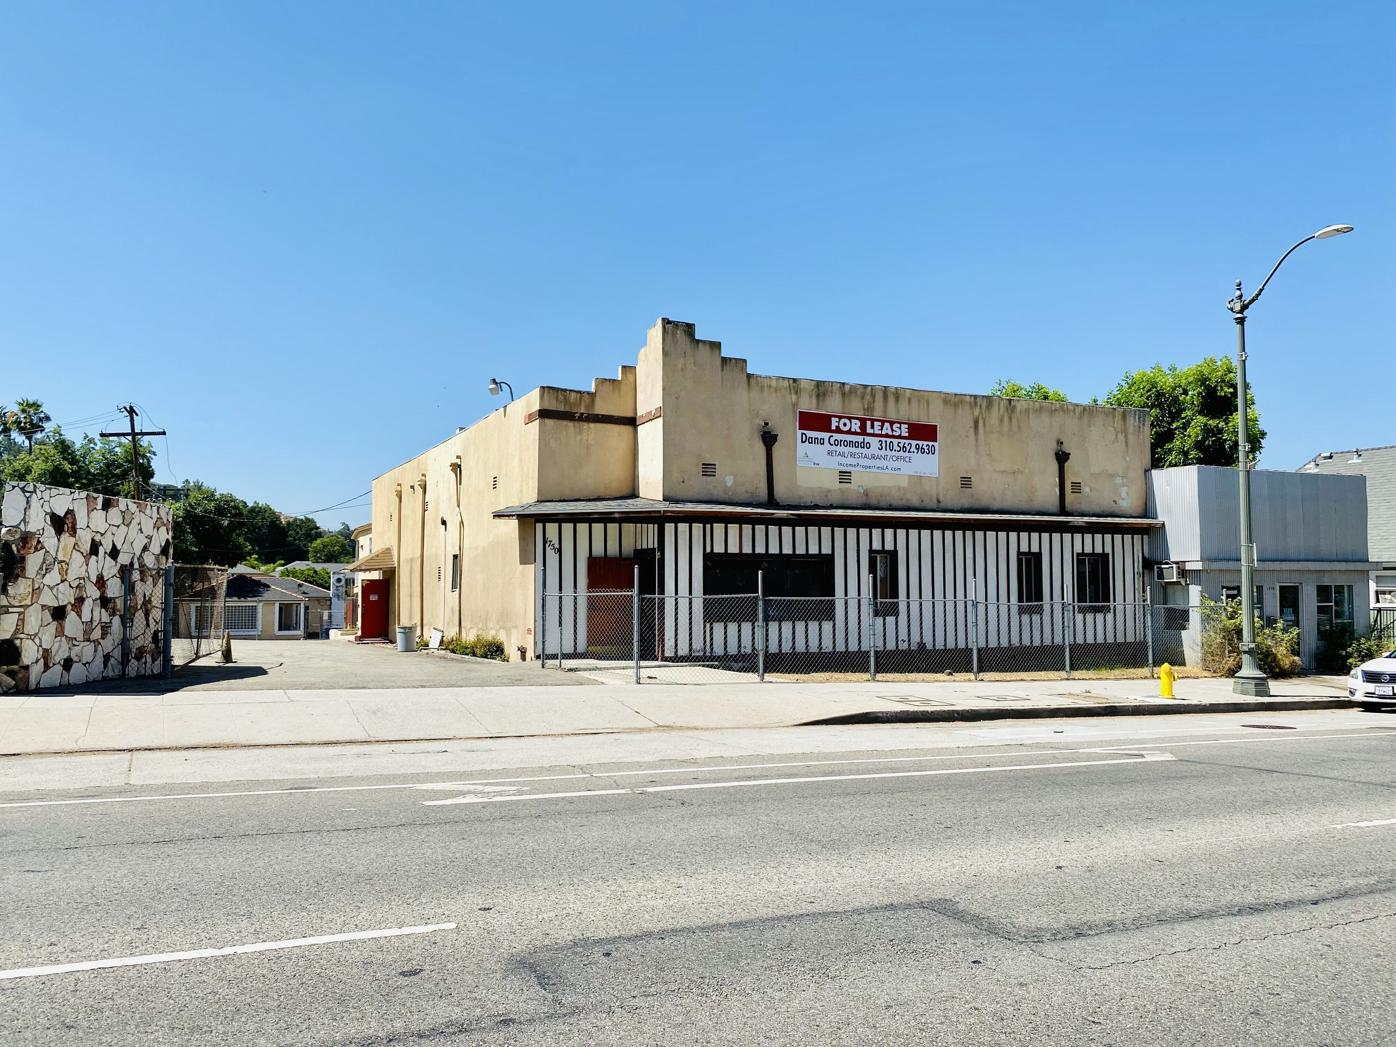 FOR LEASE: Colorado Blvd Retail, Creative Office or Restaurant Space image 1